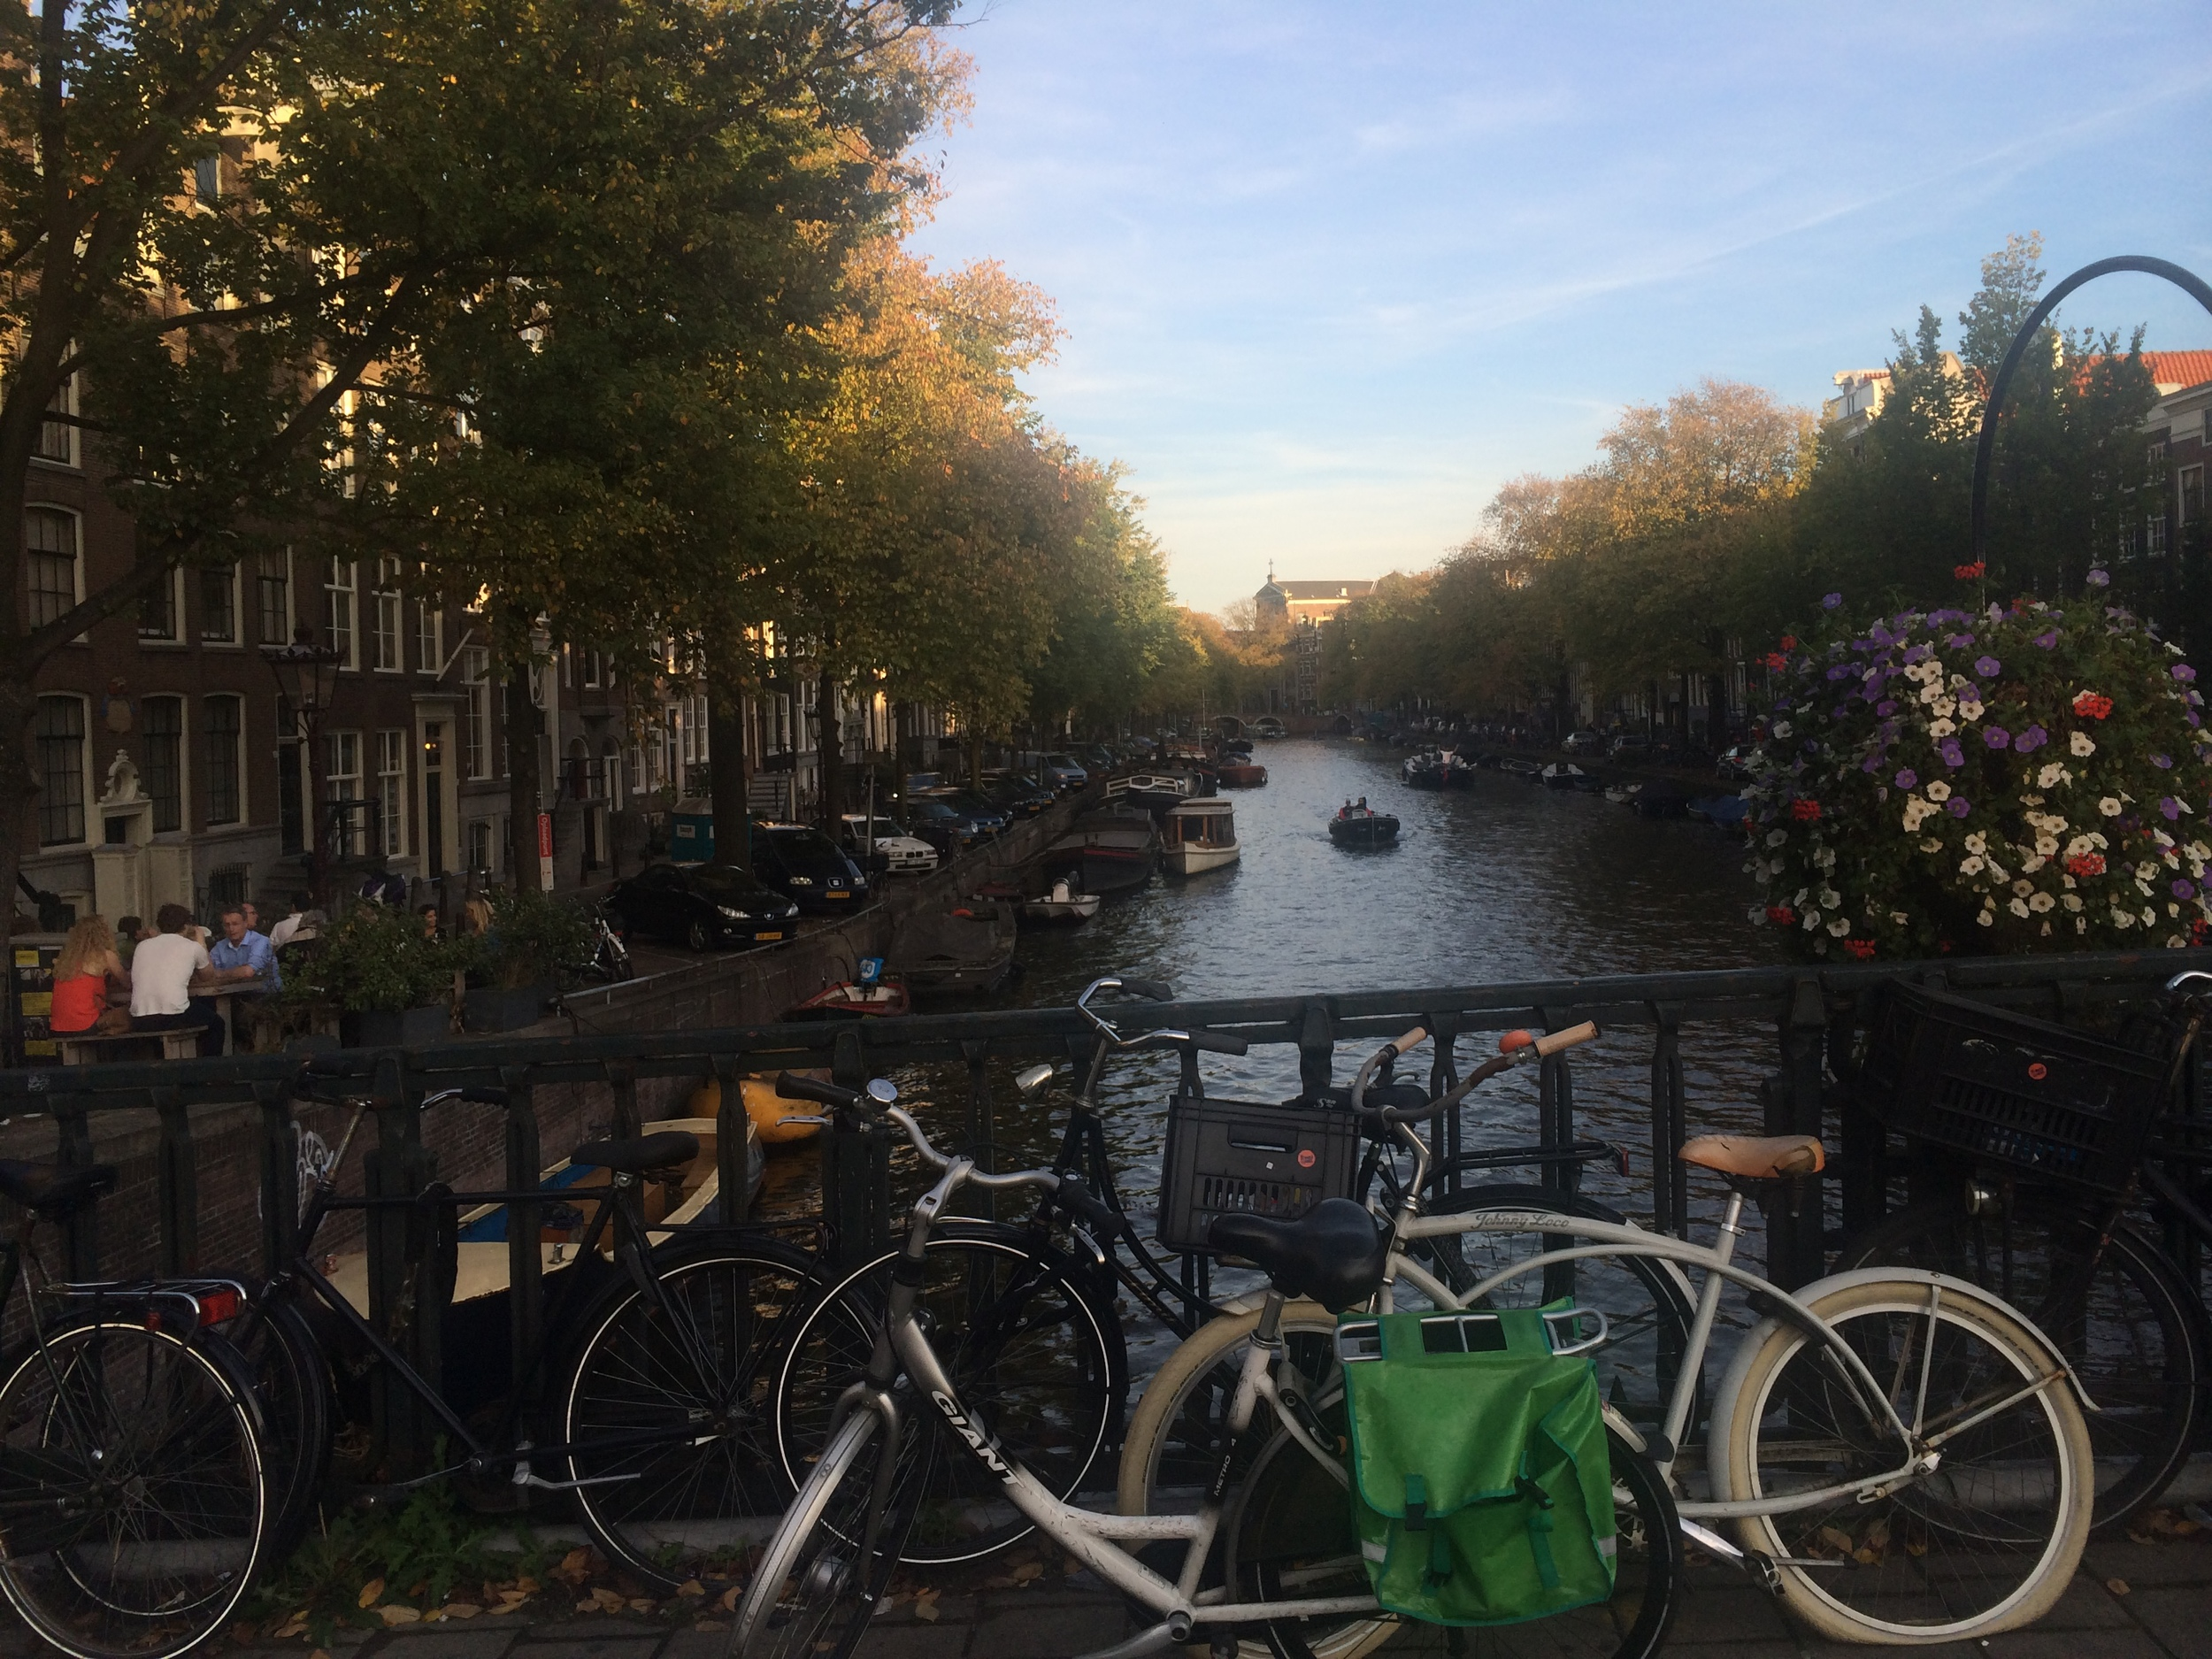 The canal & the bikes